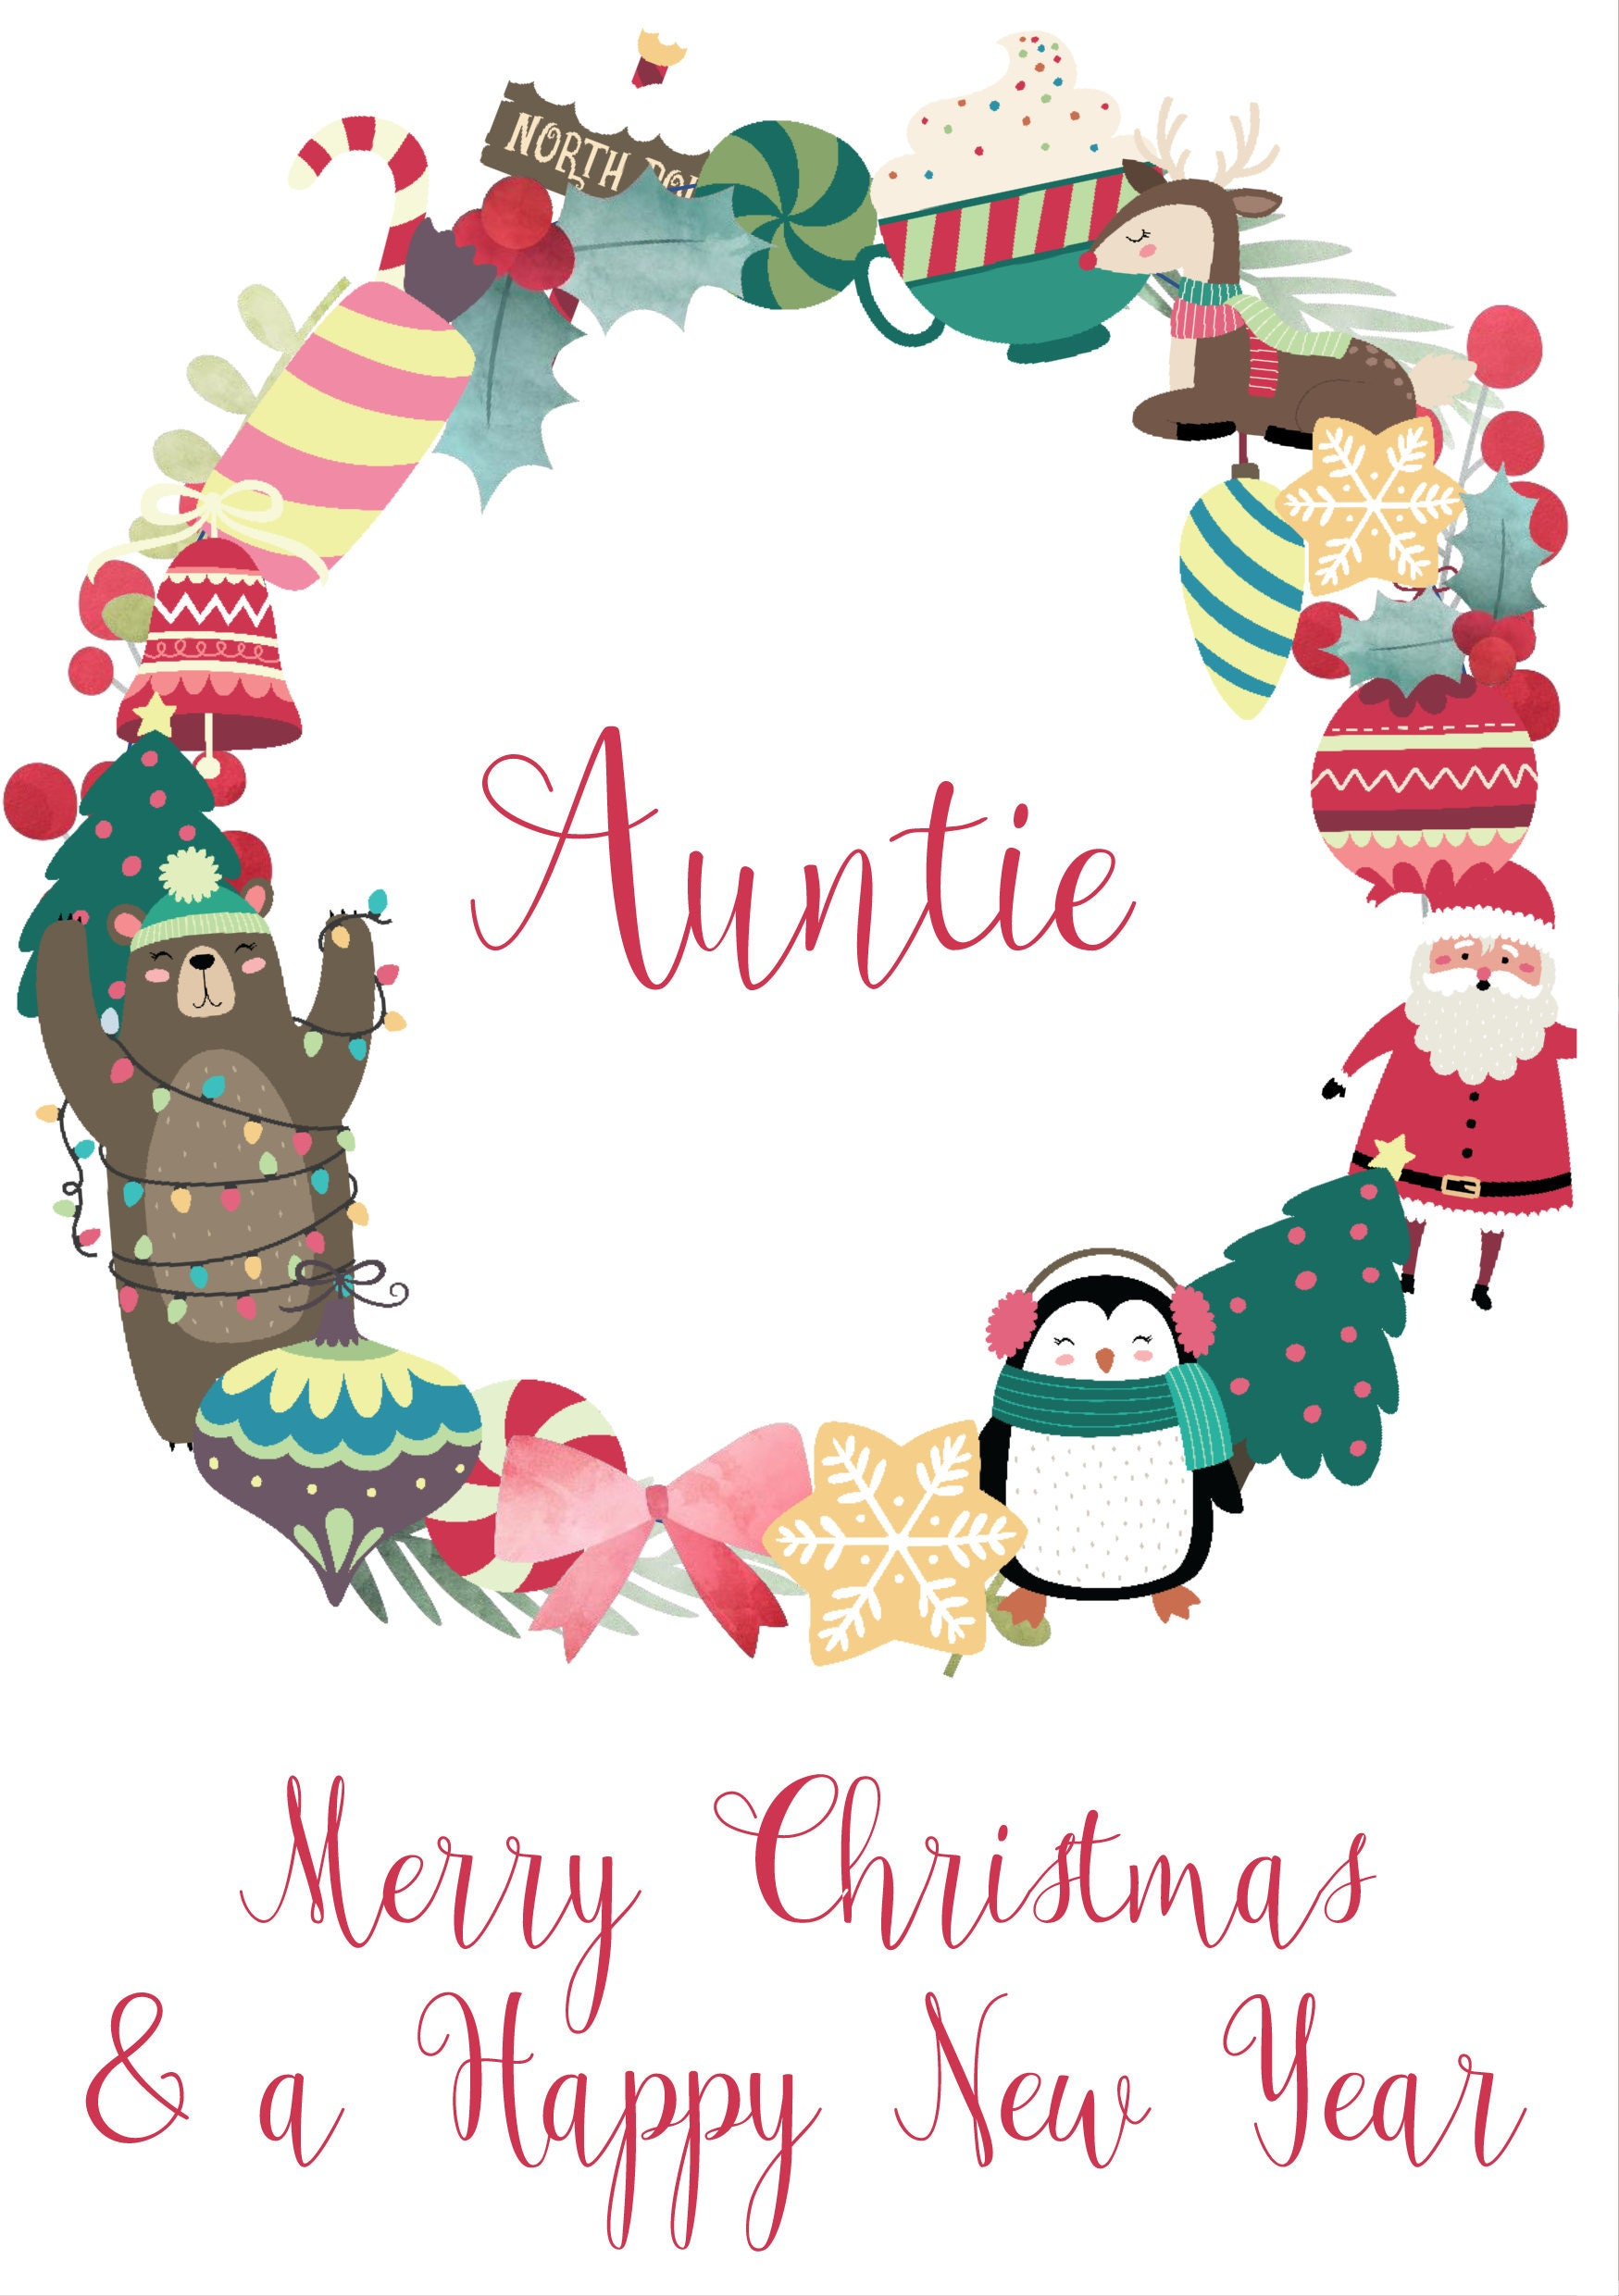 Christmas greeting card auntie festive holidays seasonal christmas greeting card auntie festive holidays seasonal envelopes a5 kristyandbryce Image collections